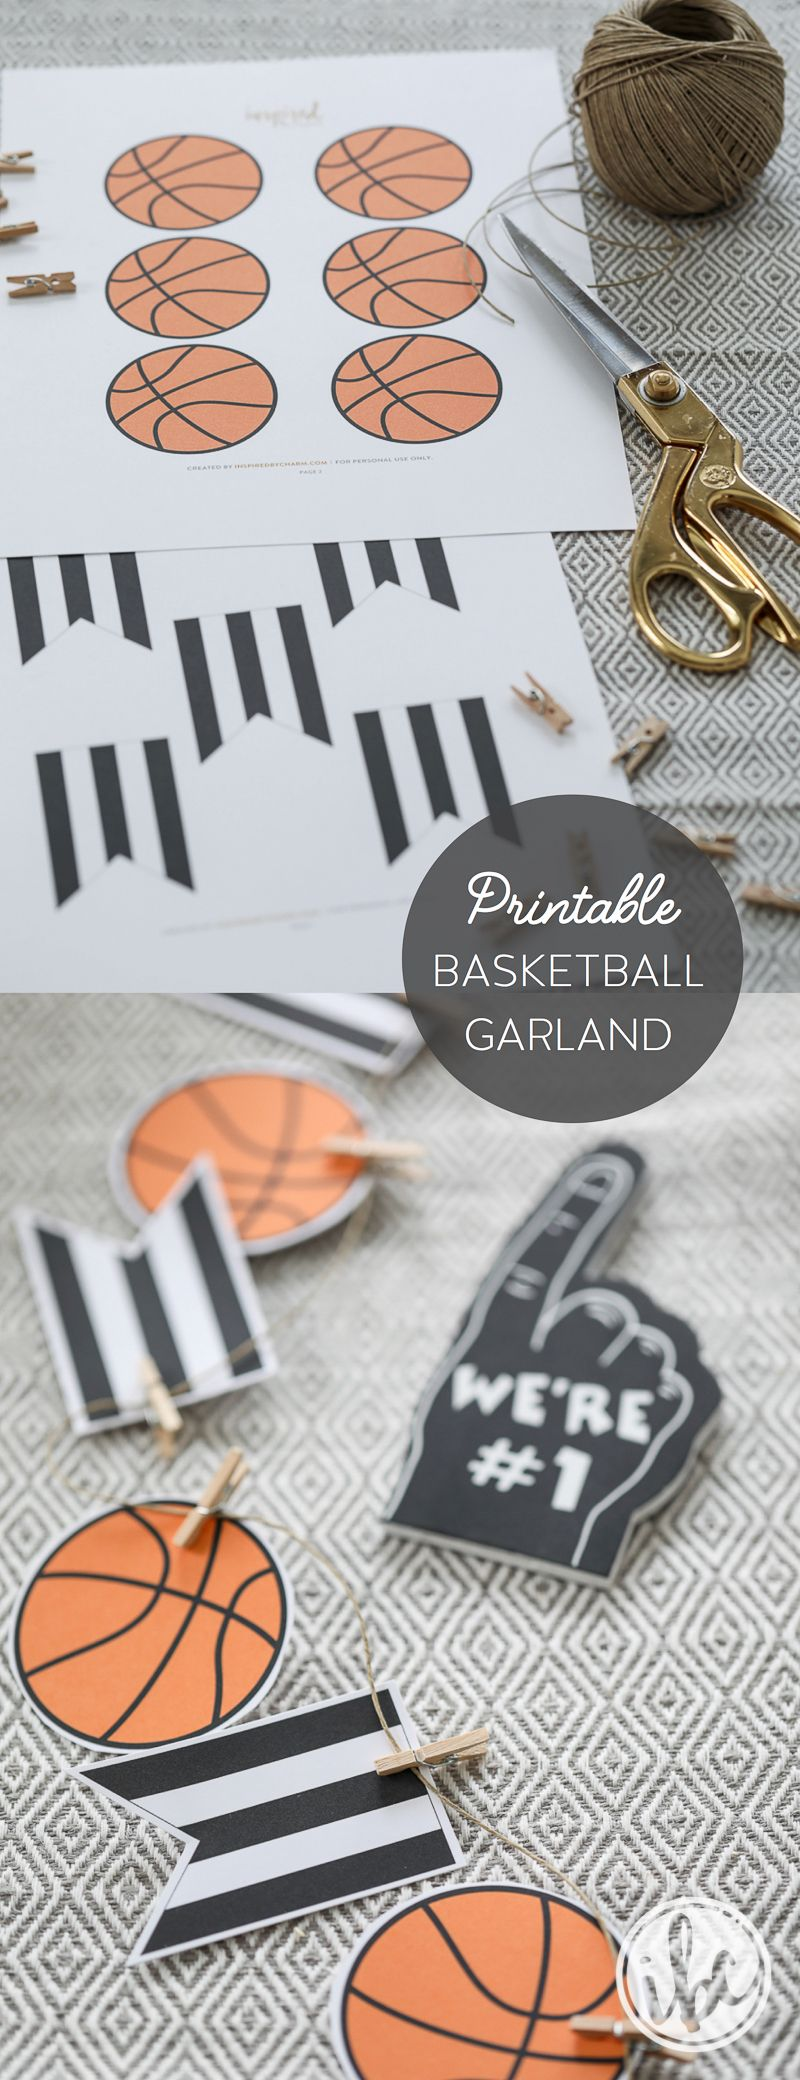 Free Printable Basketball Party Garland Download Basketball Entertaining Party Decor Idea Basketball Party Sports Themed Birthday Party Sports Birthday Party